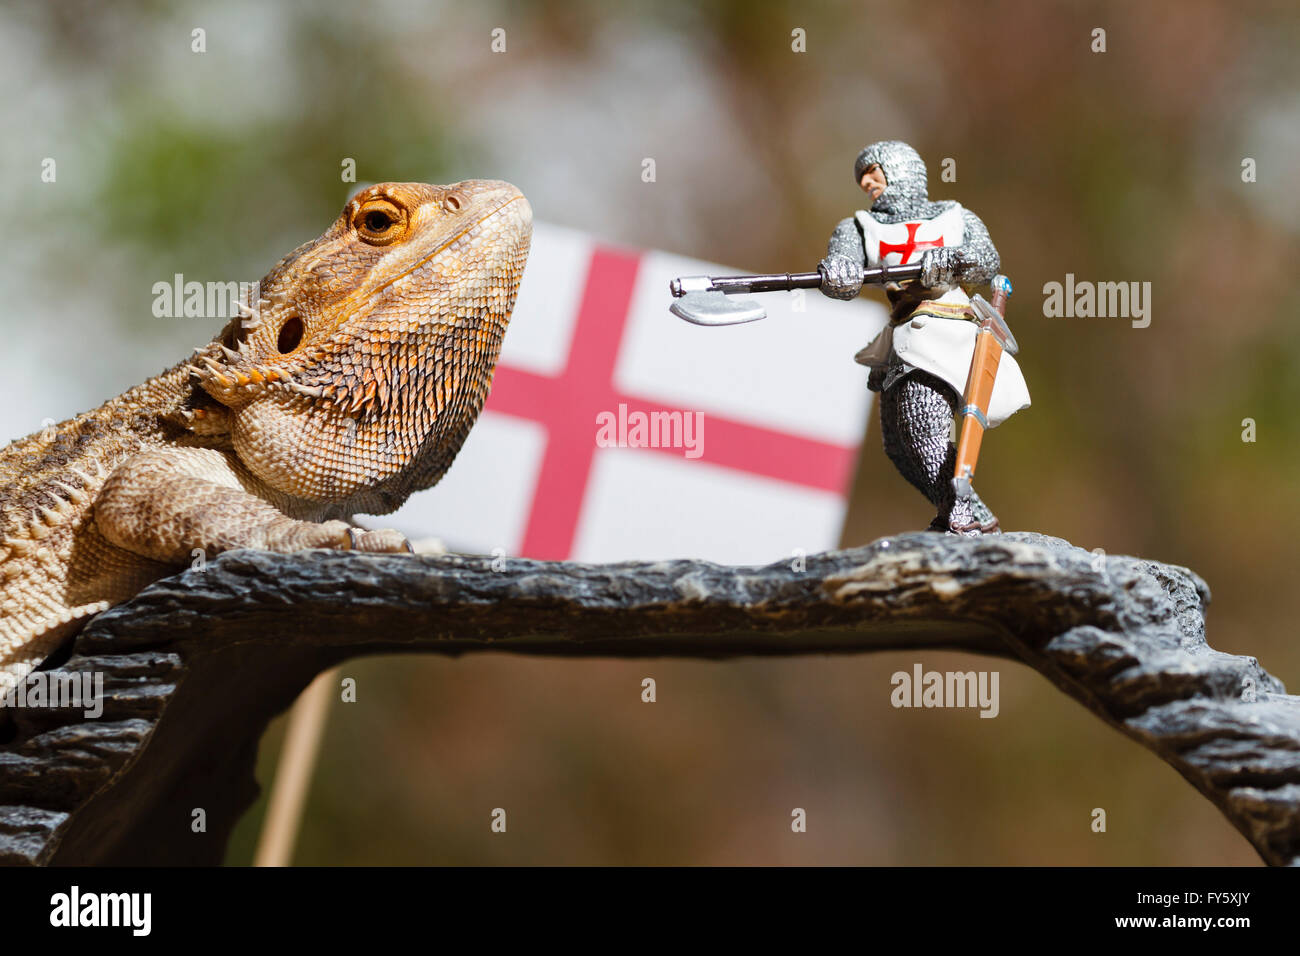 22nd April 2016.  As St. George's Day approaches, dragons across the country prepare to disrupt England's national - Stock Image